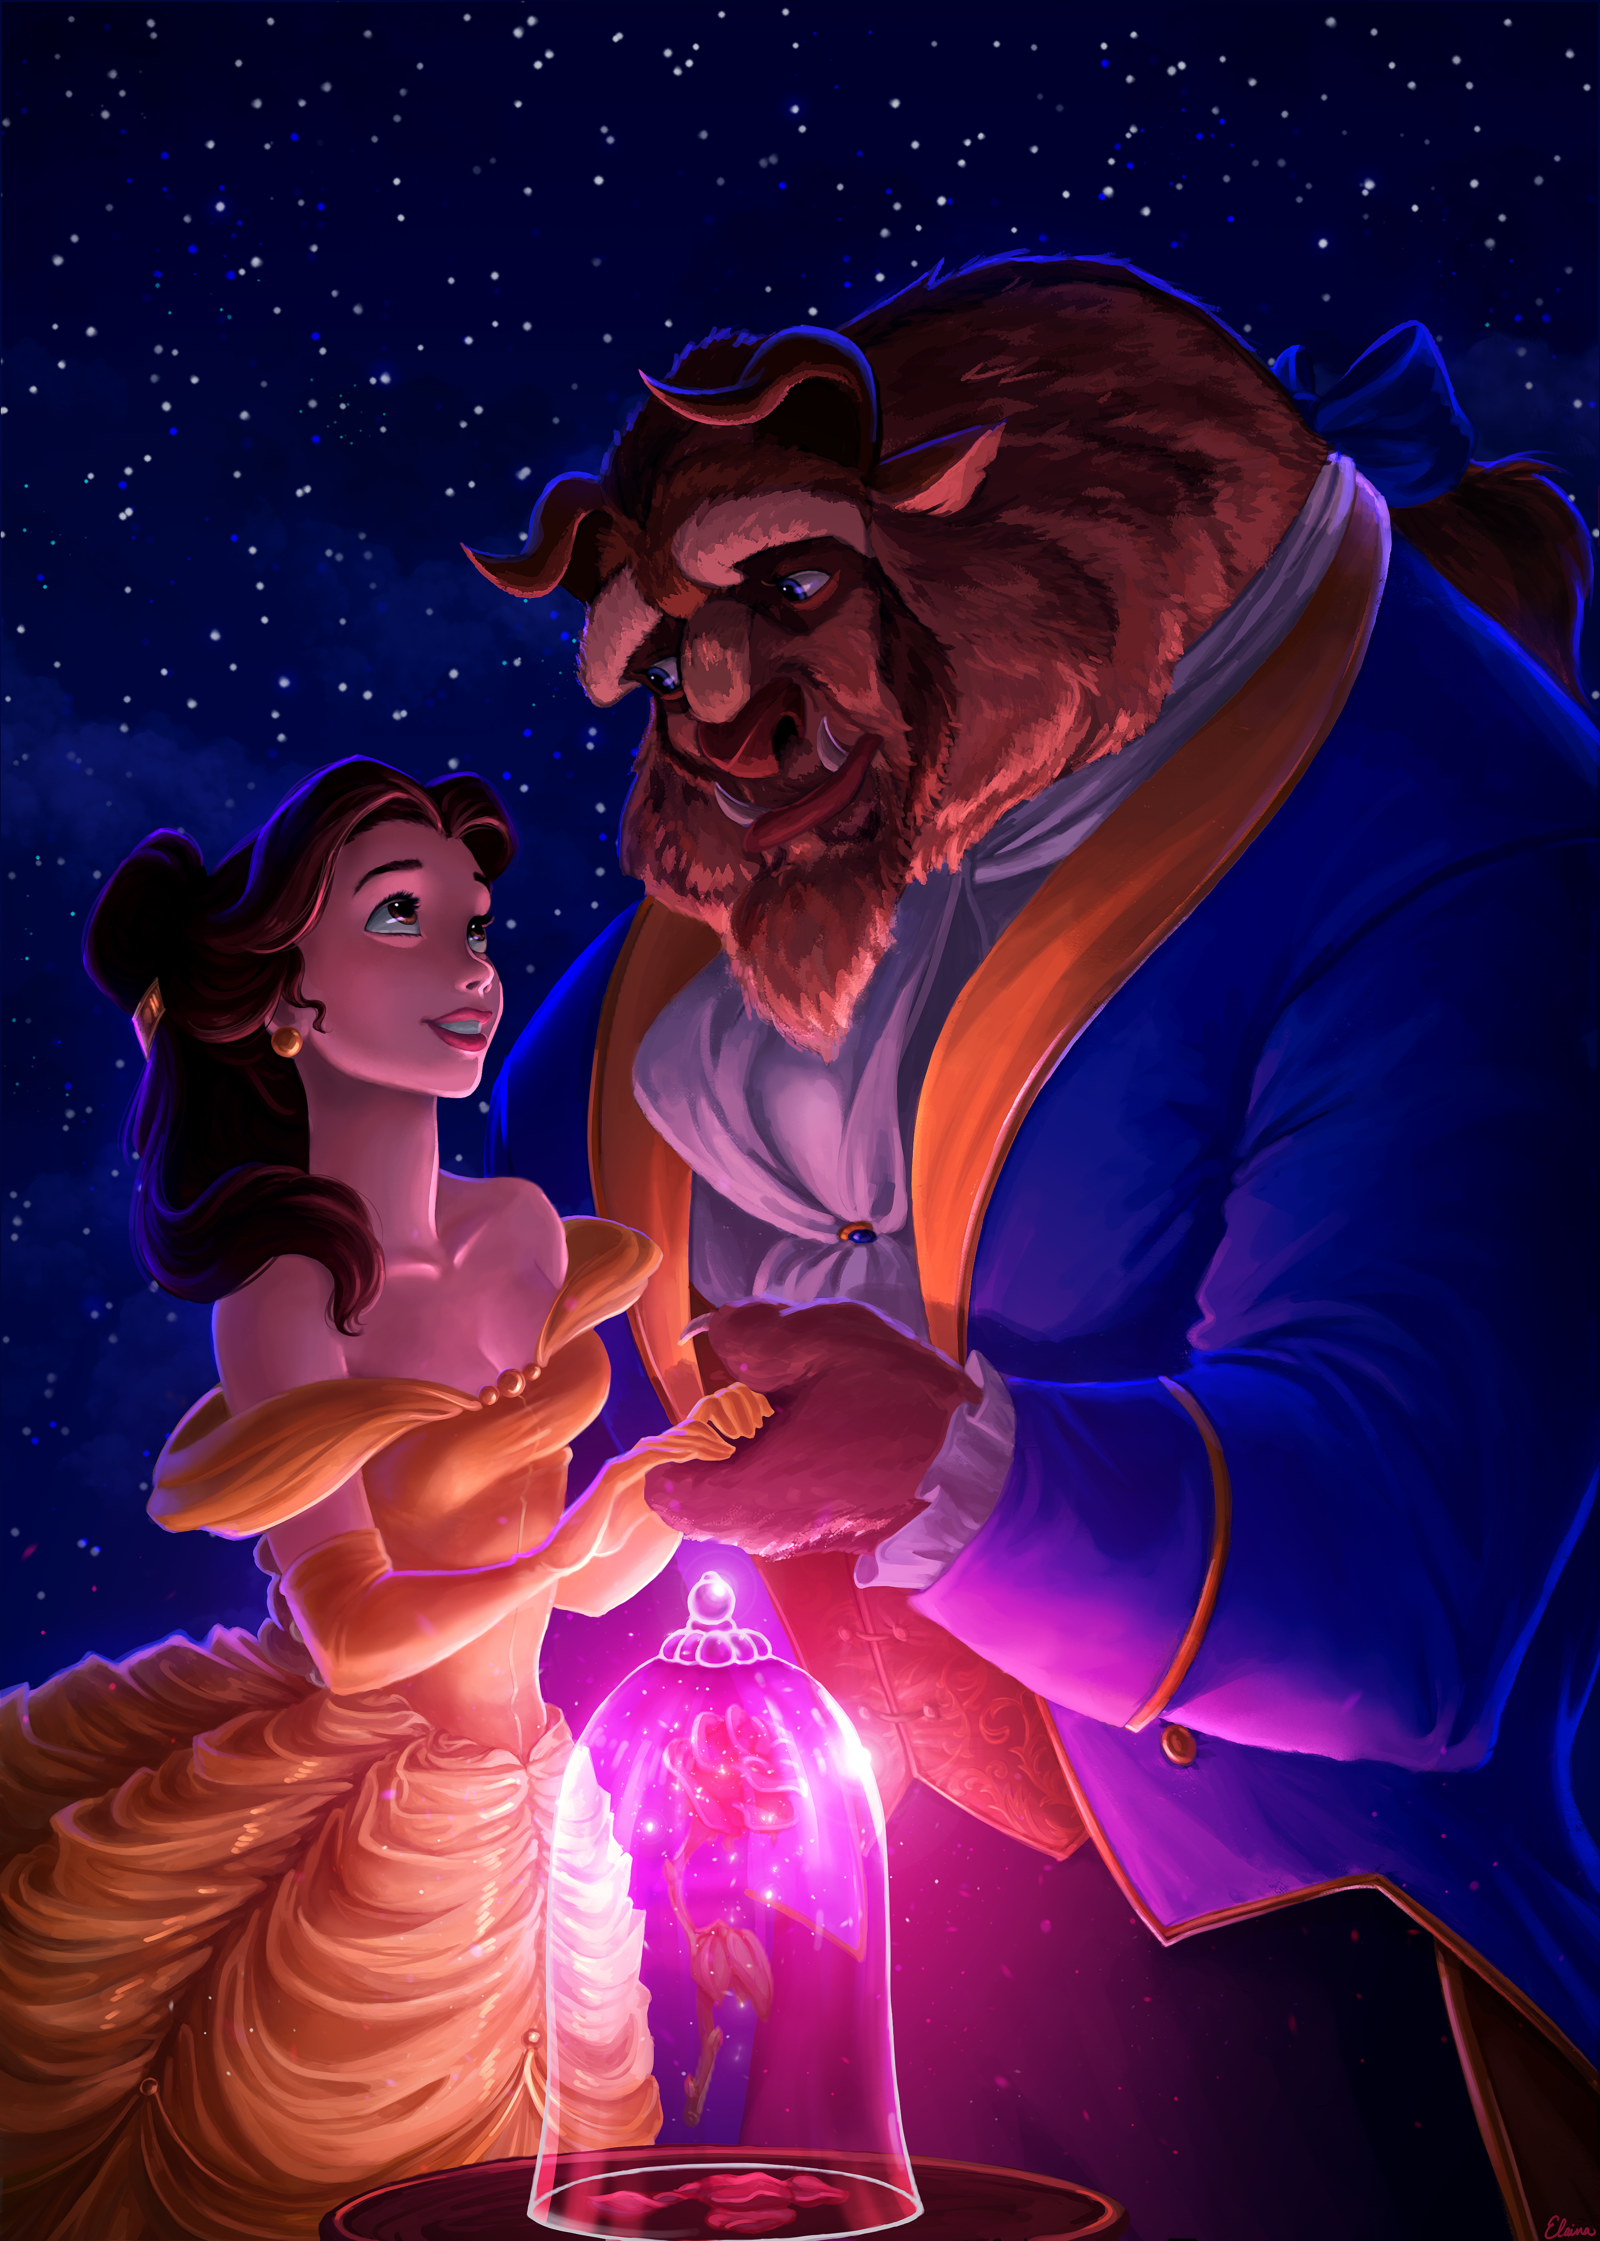 Beauty And The Beast Image By Crystal Mascioli Disney Wallpaper